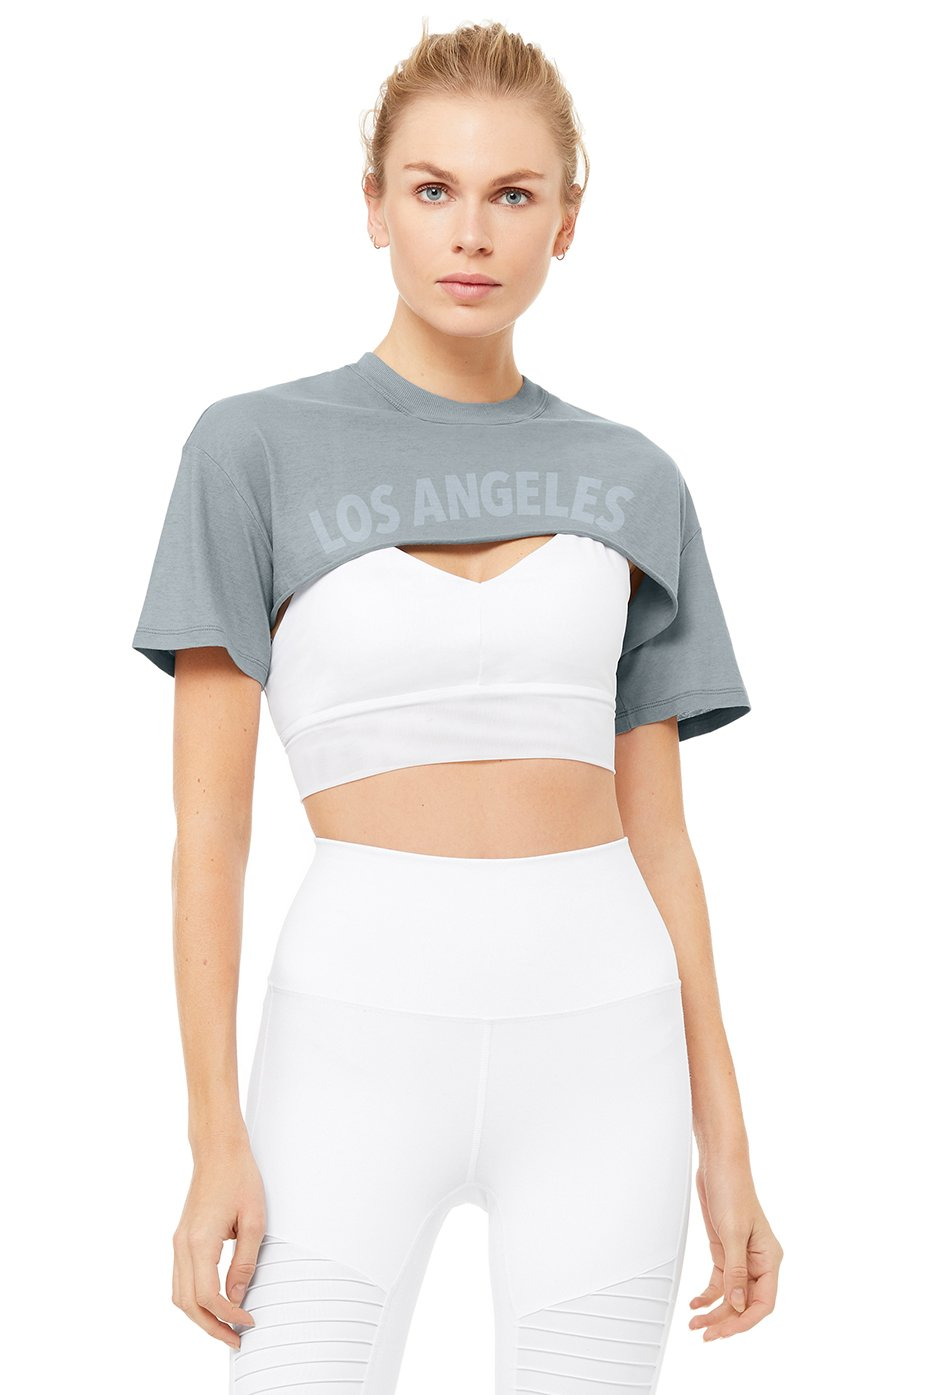 LA AMP IT UP CROP TEE by Alo Yoga, available on aloyoga.com for $44 Kylie Jenner Outerwear Exact Product